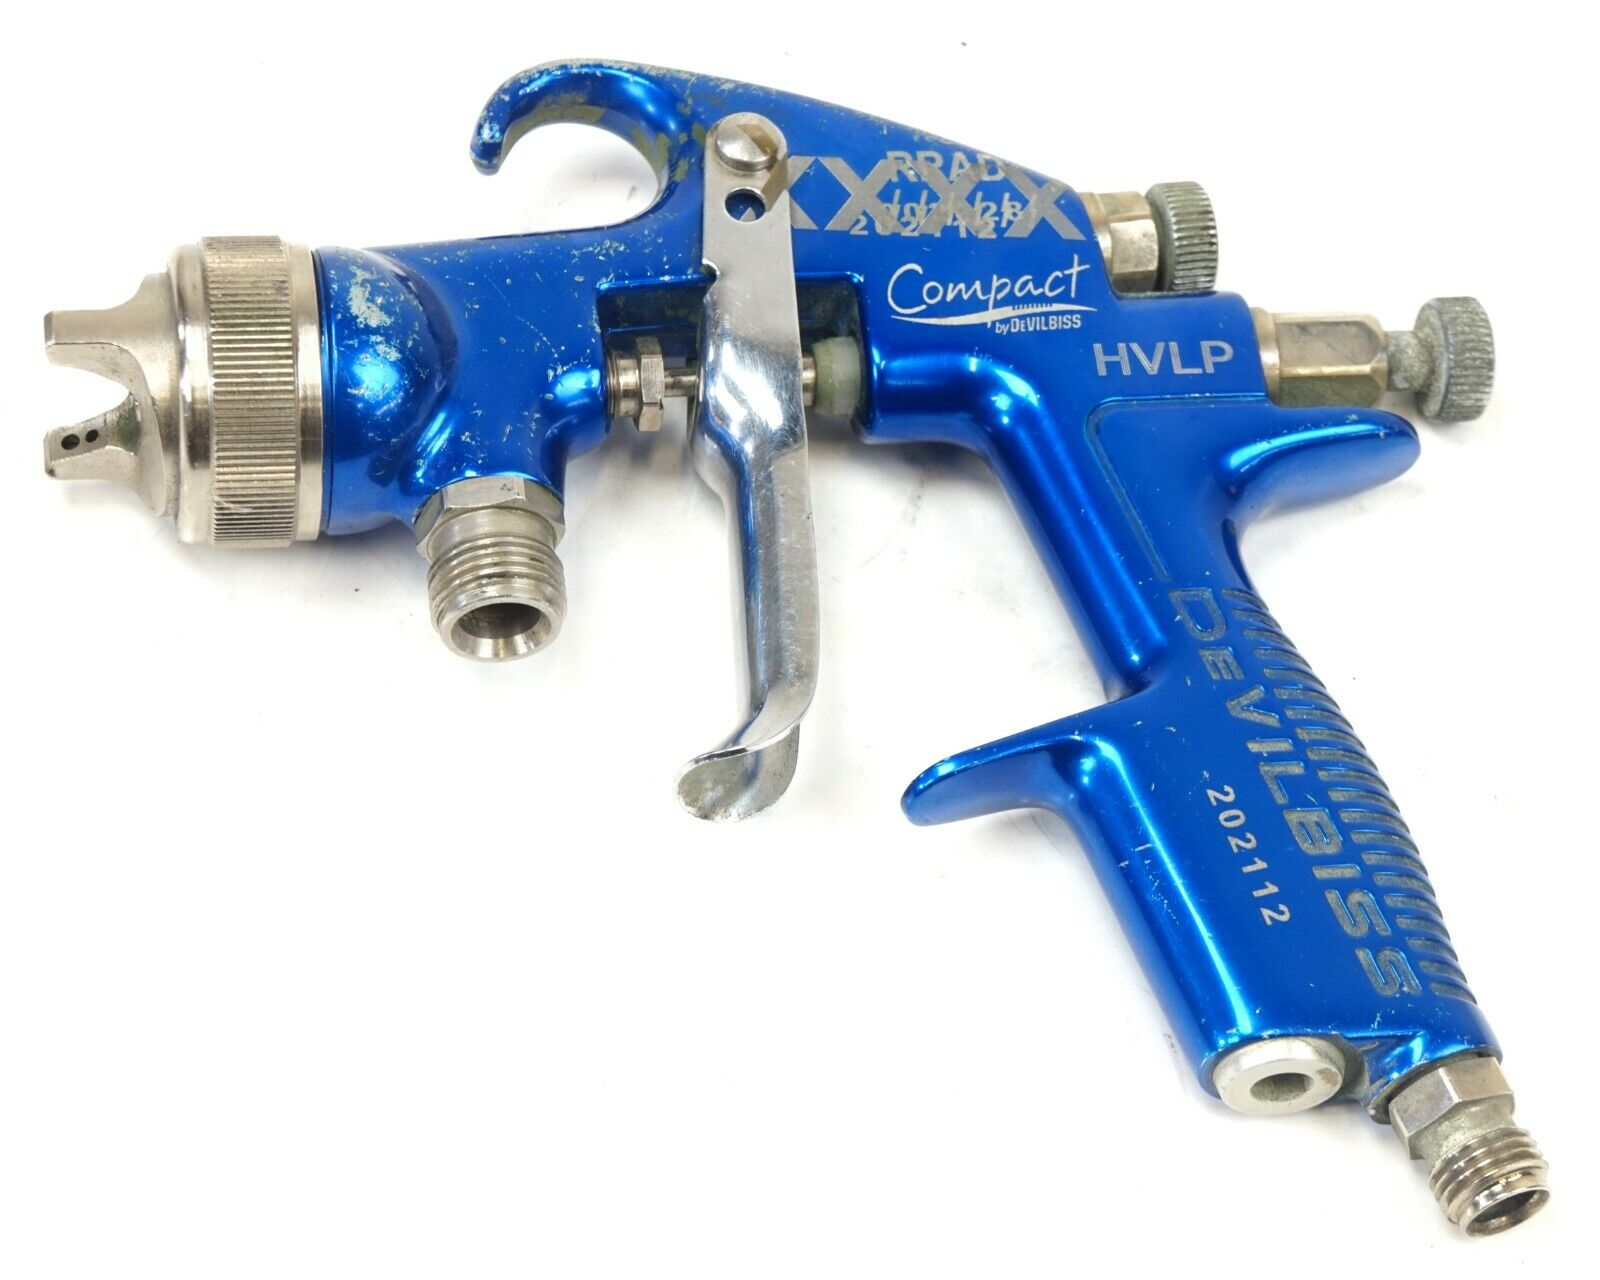 Devilbiss Spray Gun